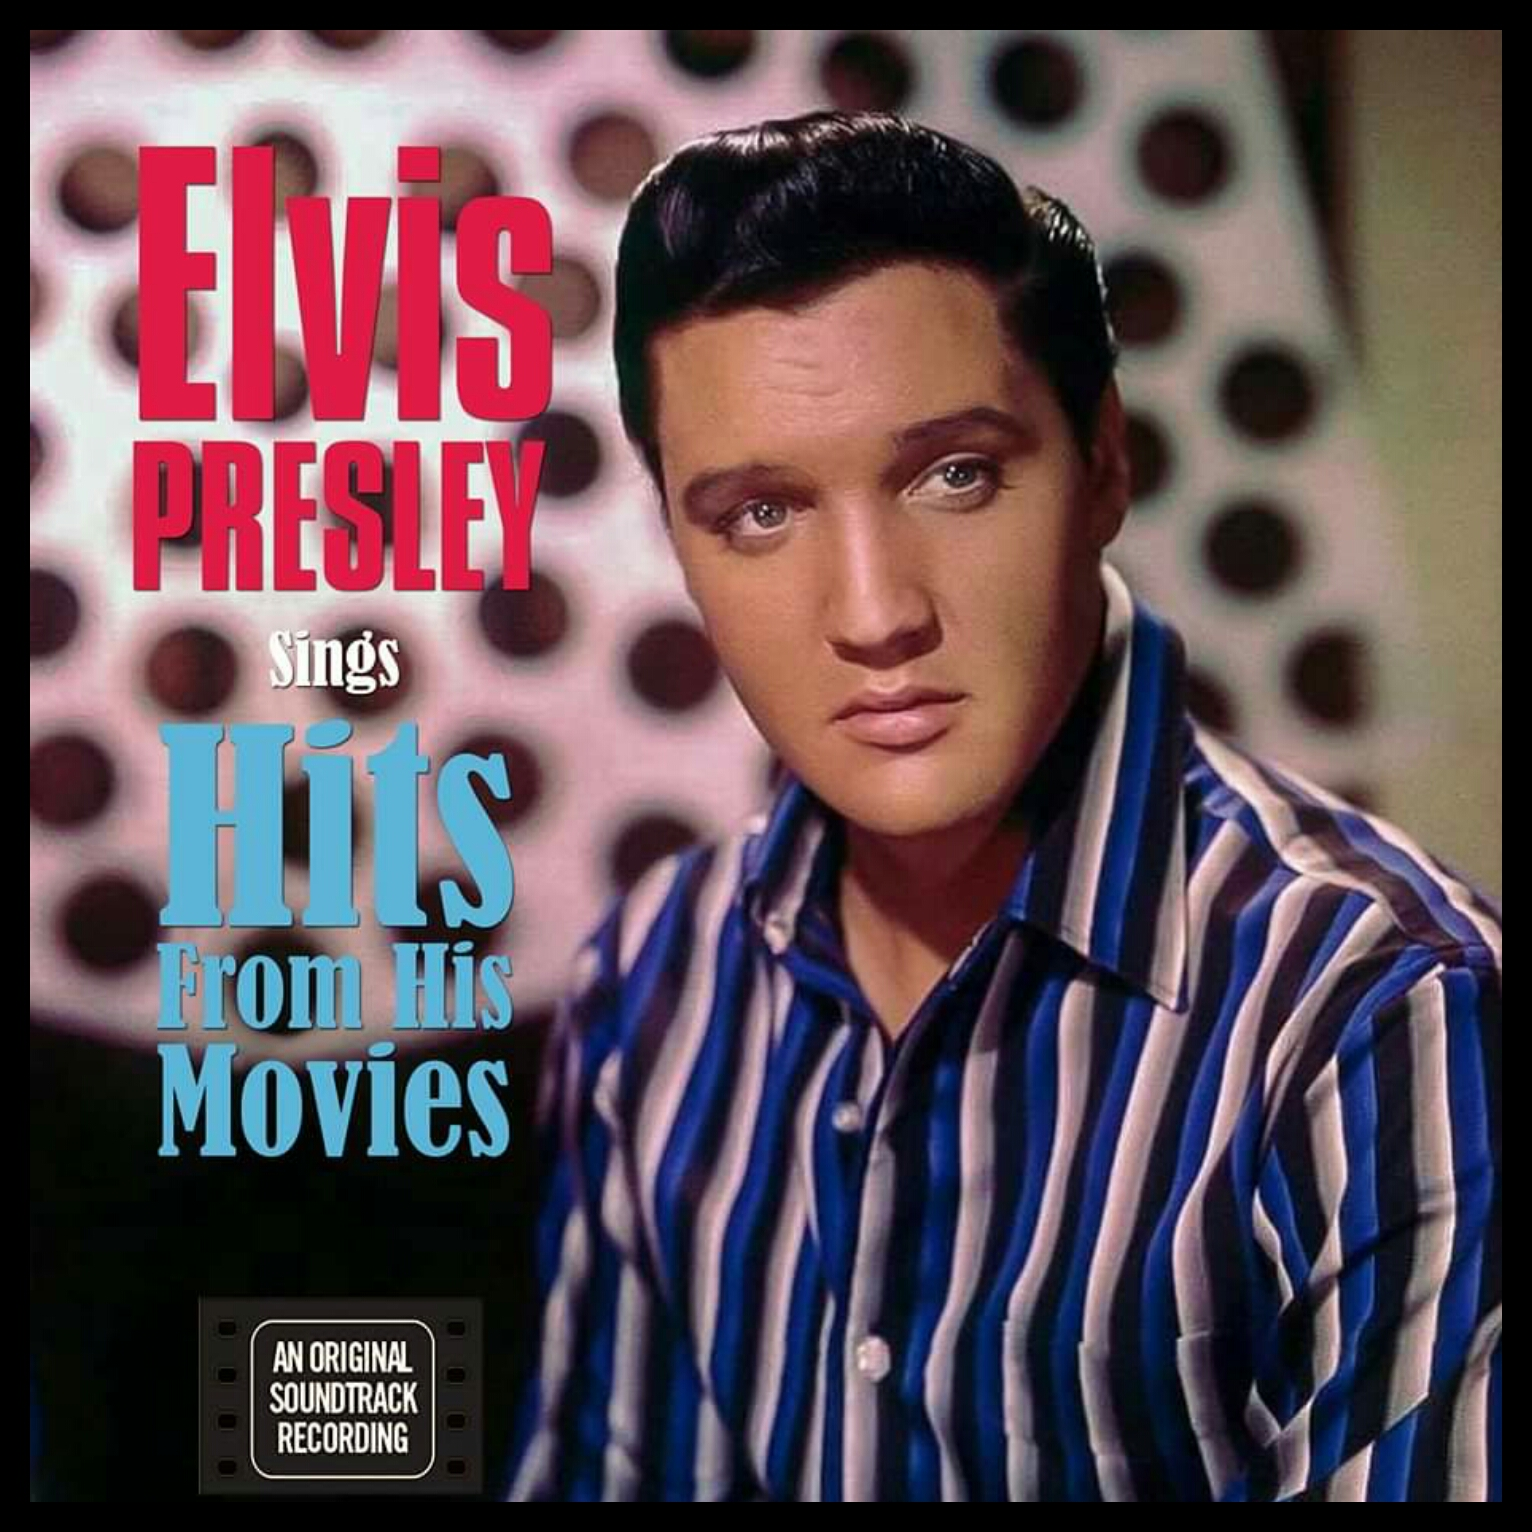 ELVIS SINGS HITS FROM HIS MOVIES Img_2020-07-03_18-22-jdk6l